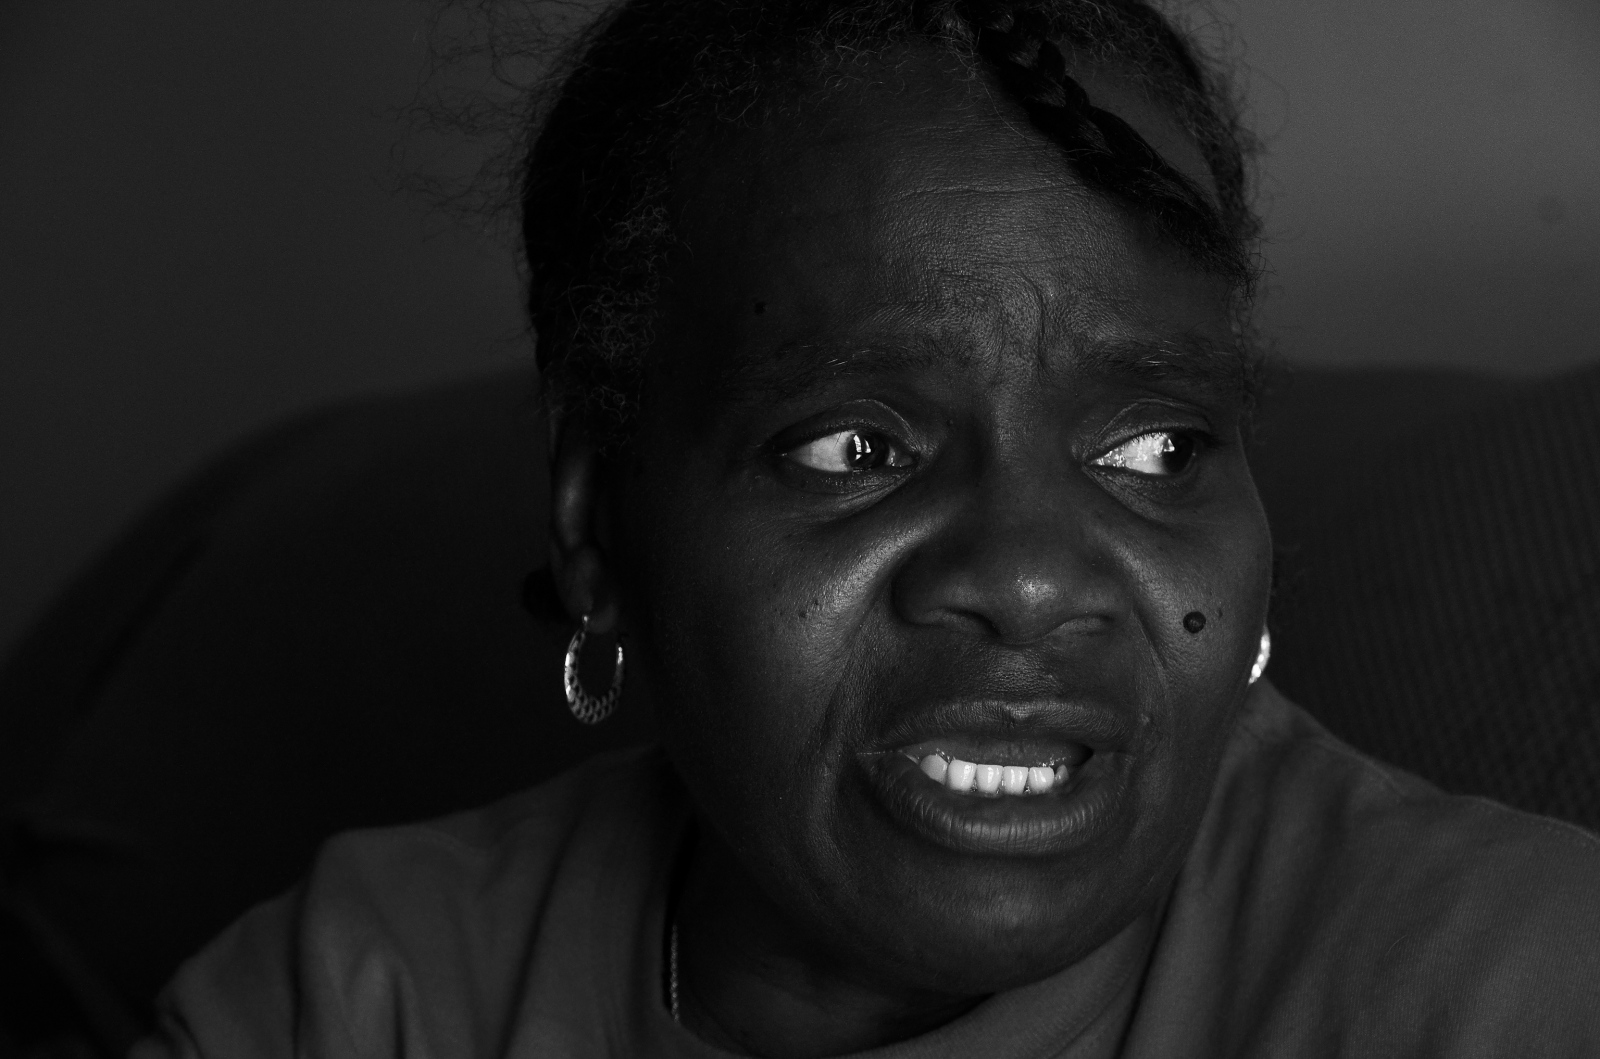 Shirley, 62, has been a recovering addict since the 60s and is HIV positive.